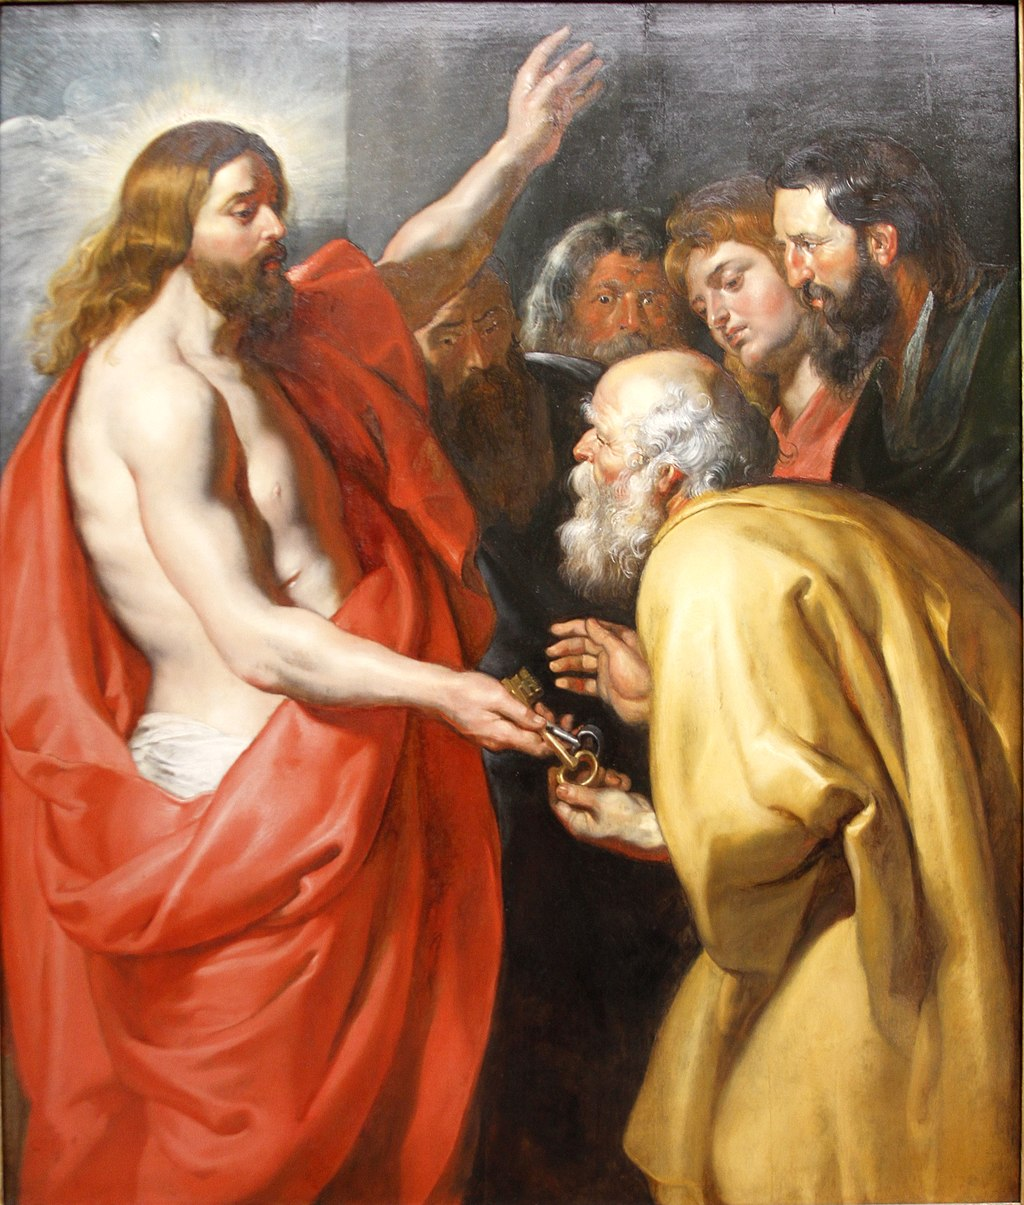 Christ giving the Keys of Heaven to St. Peter by Peter Paul Rubens - Gemäldegalerie - Berlin - Germany 2017